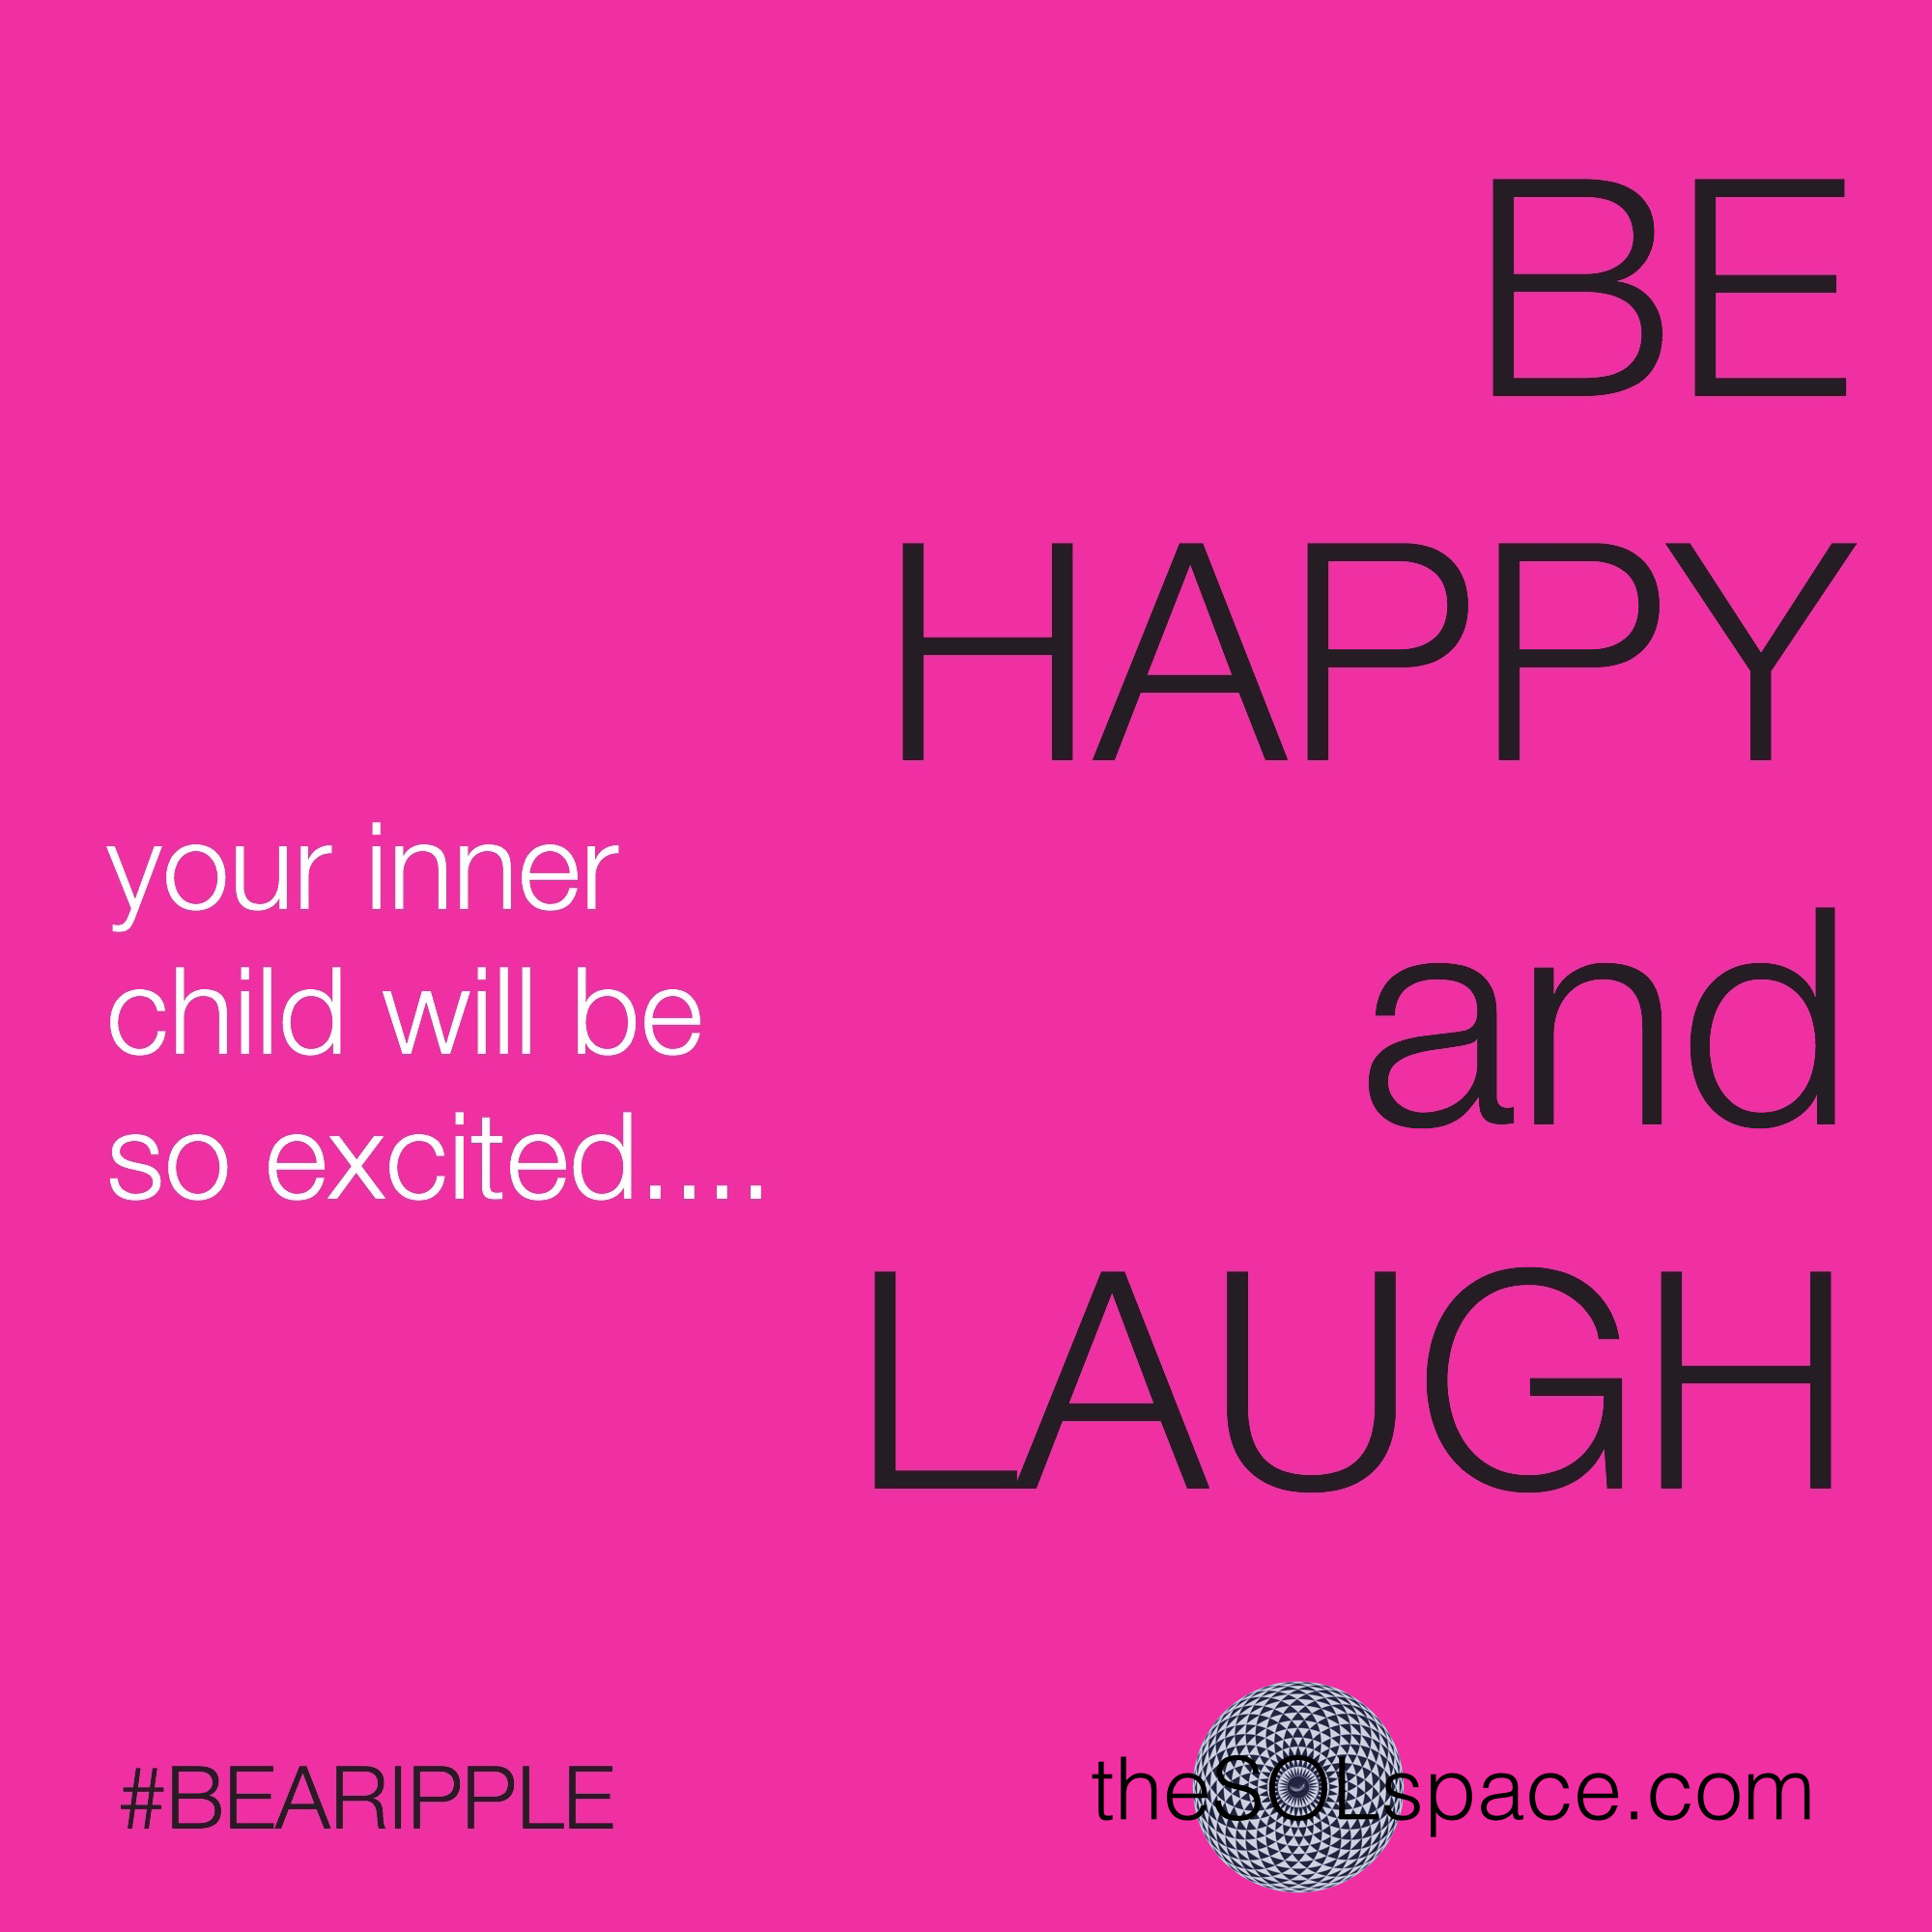 #BeARipple Be HAPPY and LAUGH...your inner child will be so excited @theSOLspace